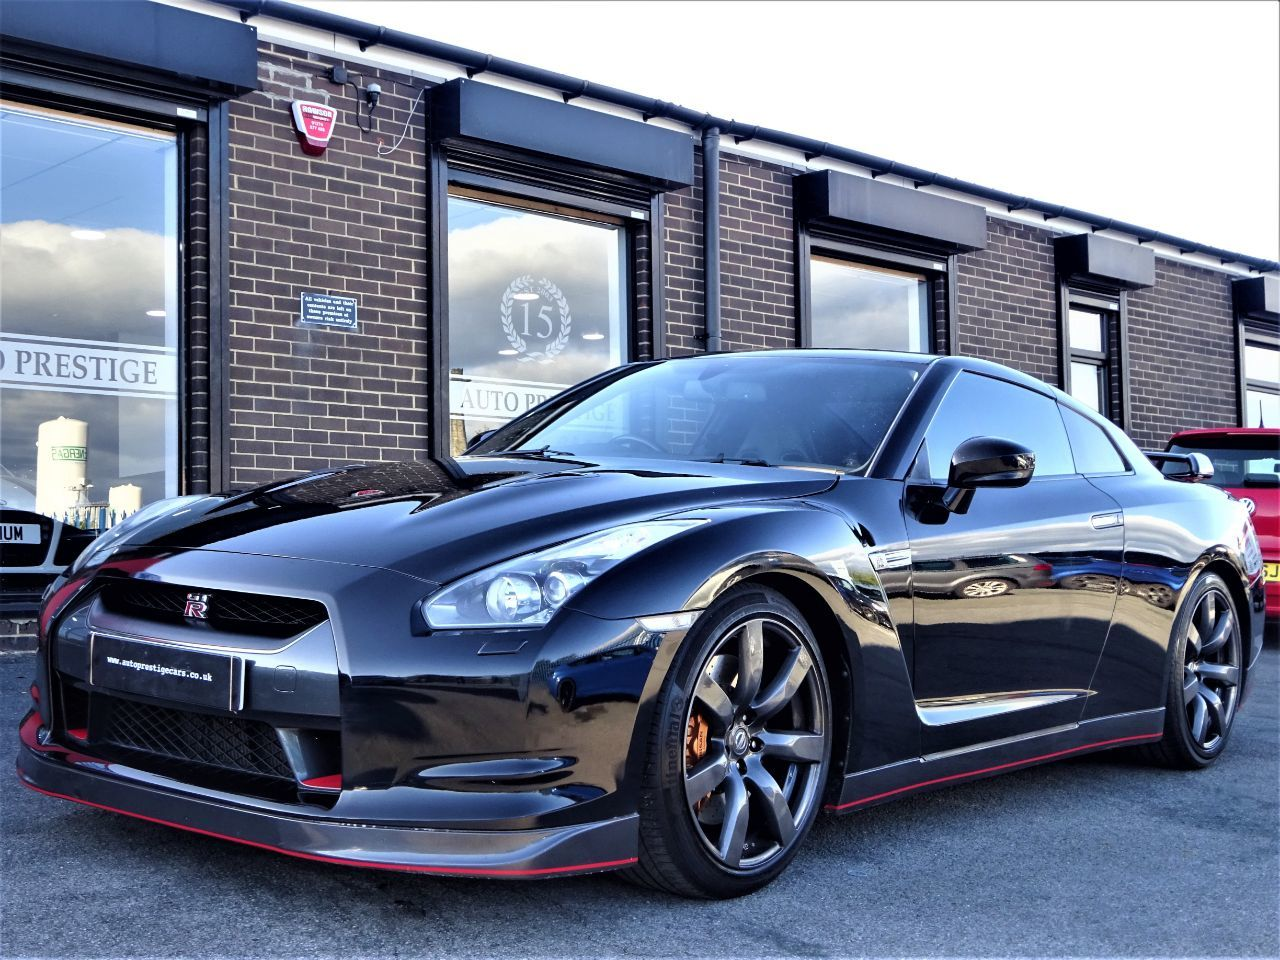 Nissan GT-R 3.8 Black Edition 2dr Auto [Sat Nav] WITH UPGRADES 600 BHP PLUS GTR PLATE Coupe Petrol Black at Autoprestige Bradford